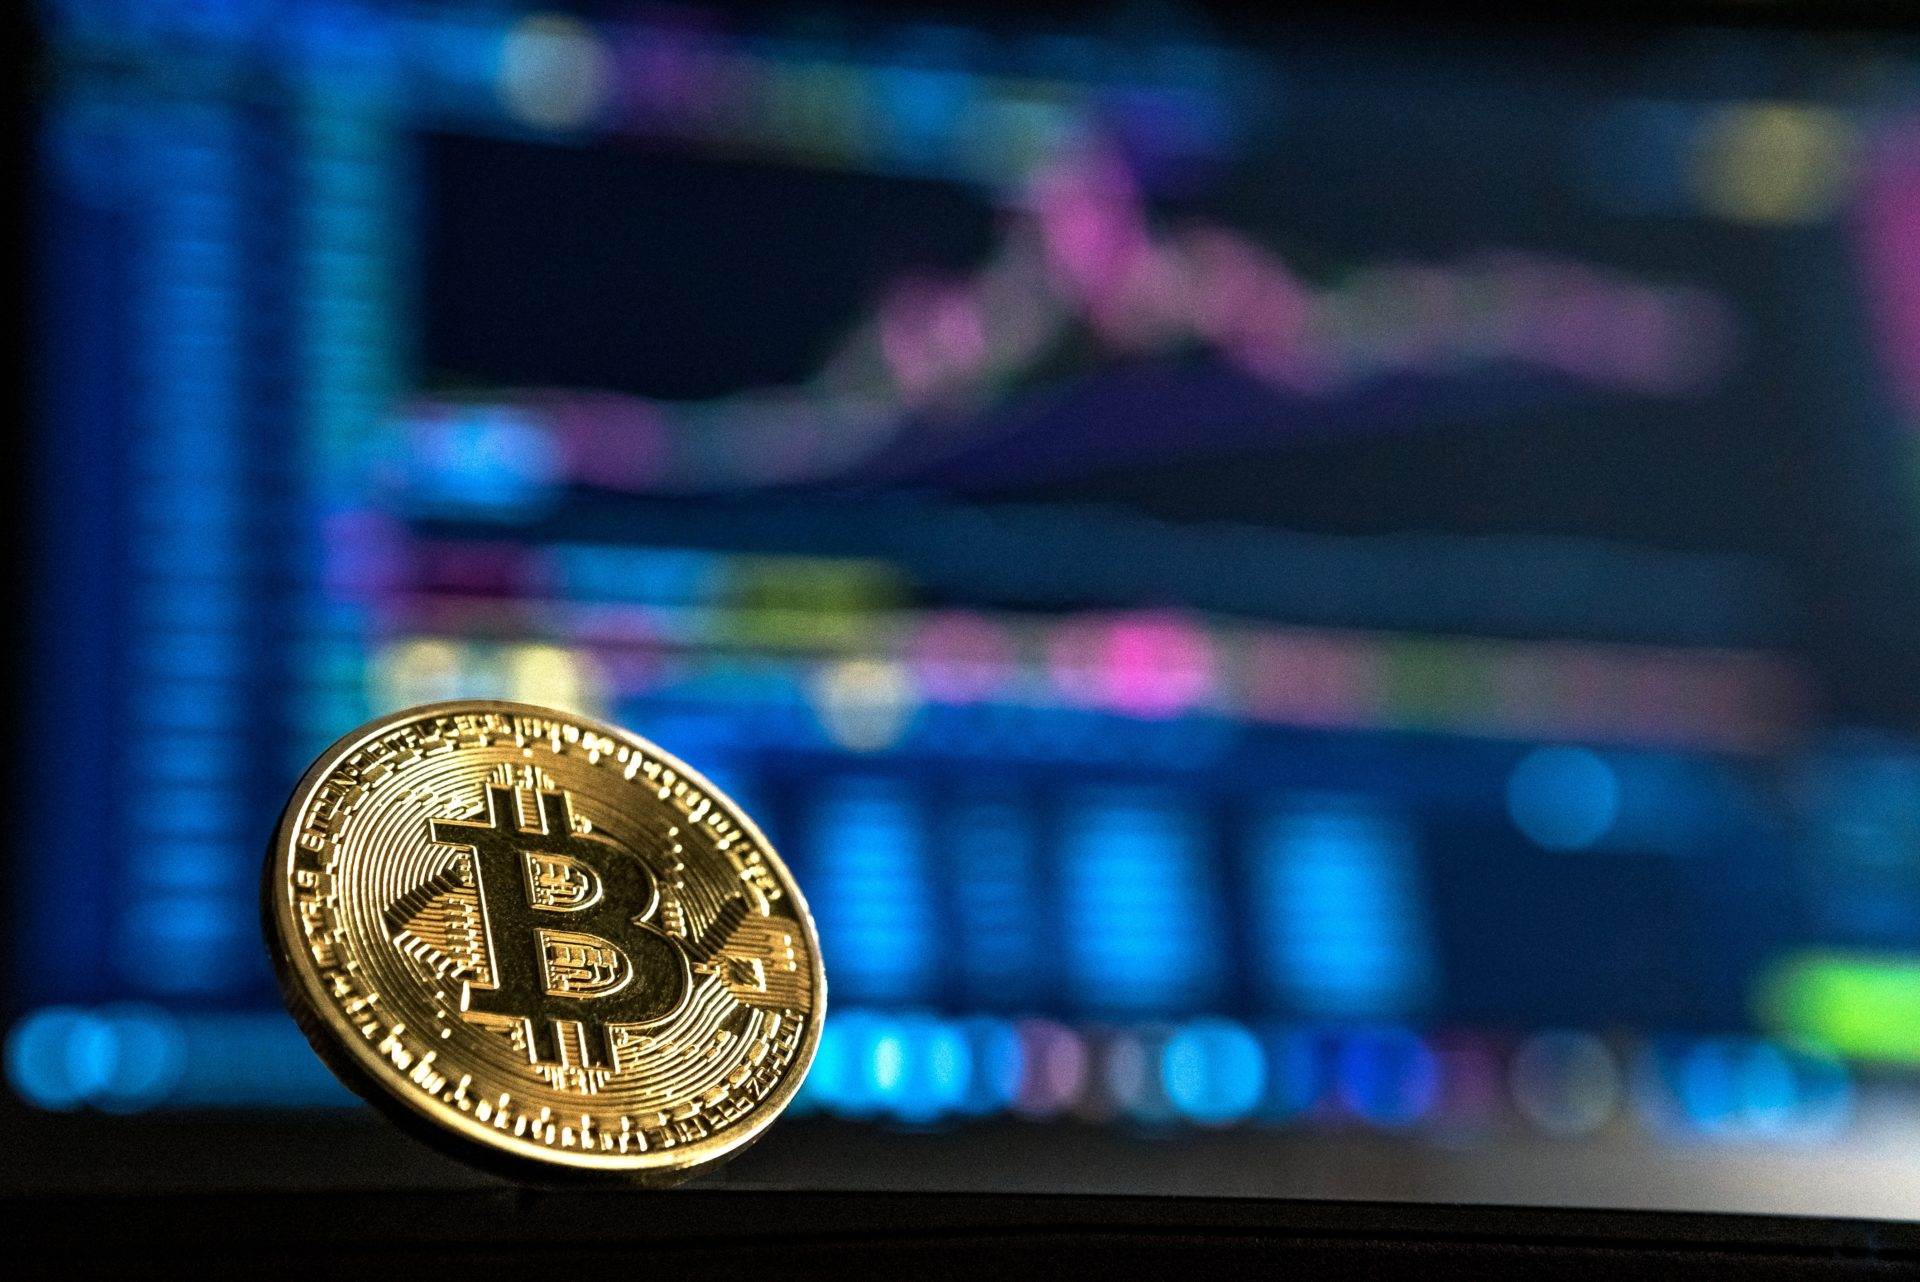 Bitcoin (BTC) Falls To $6900 In Market Drop, Analysts Call For Lower Prices 13